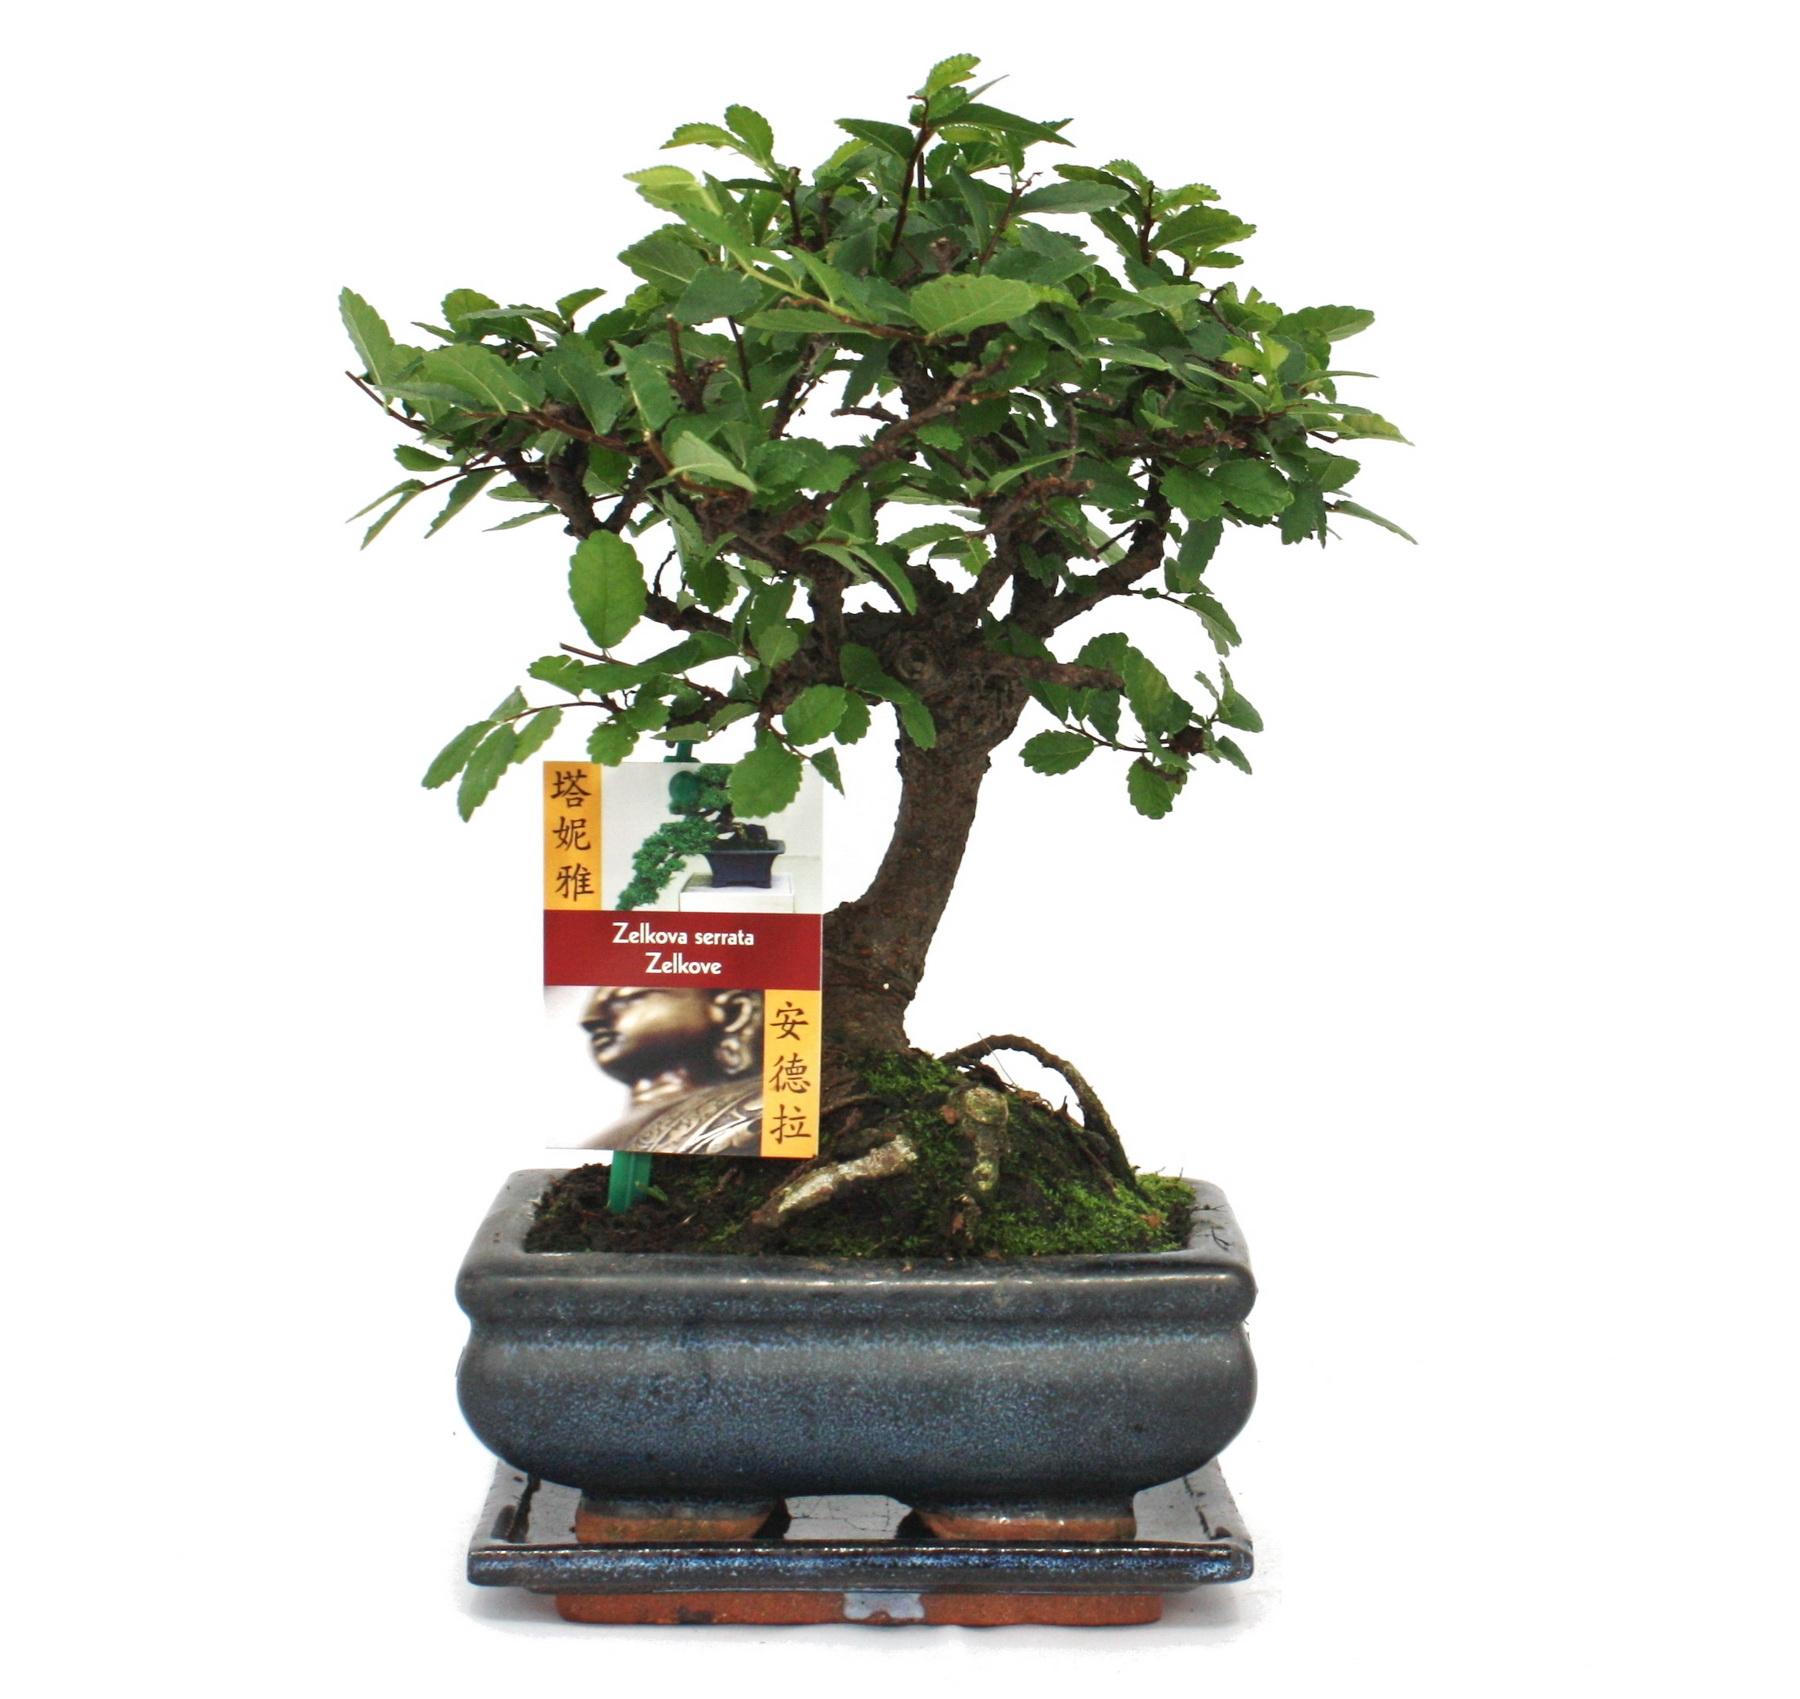 bonsai chinesische ulme ulmus parviflora ca 6 jahre kugelform. Black Bedroom Furniture Sets. Home Design Ideas